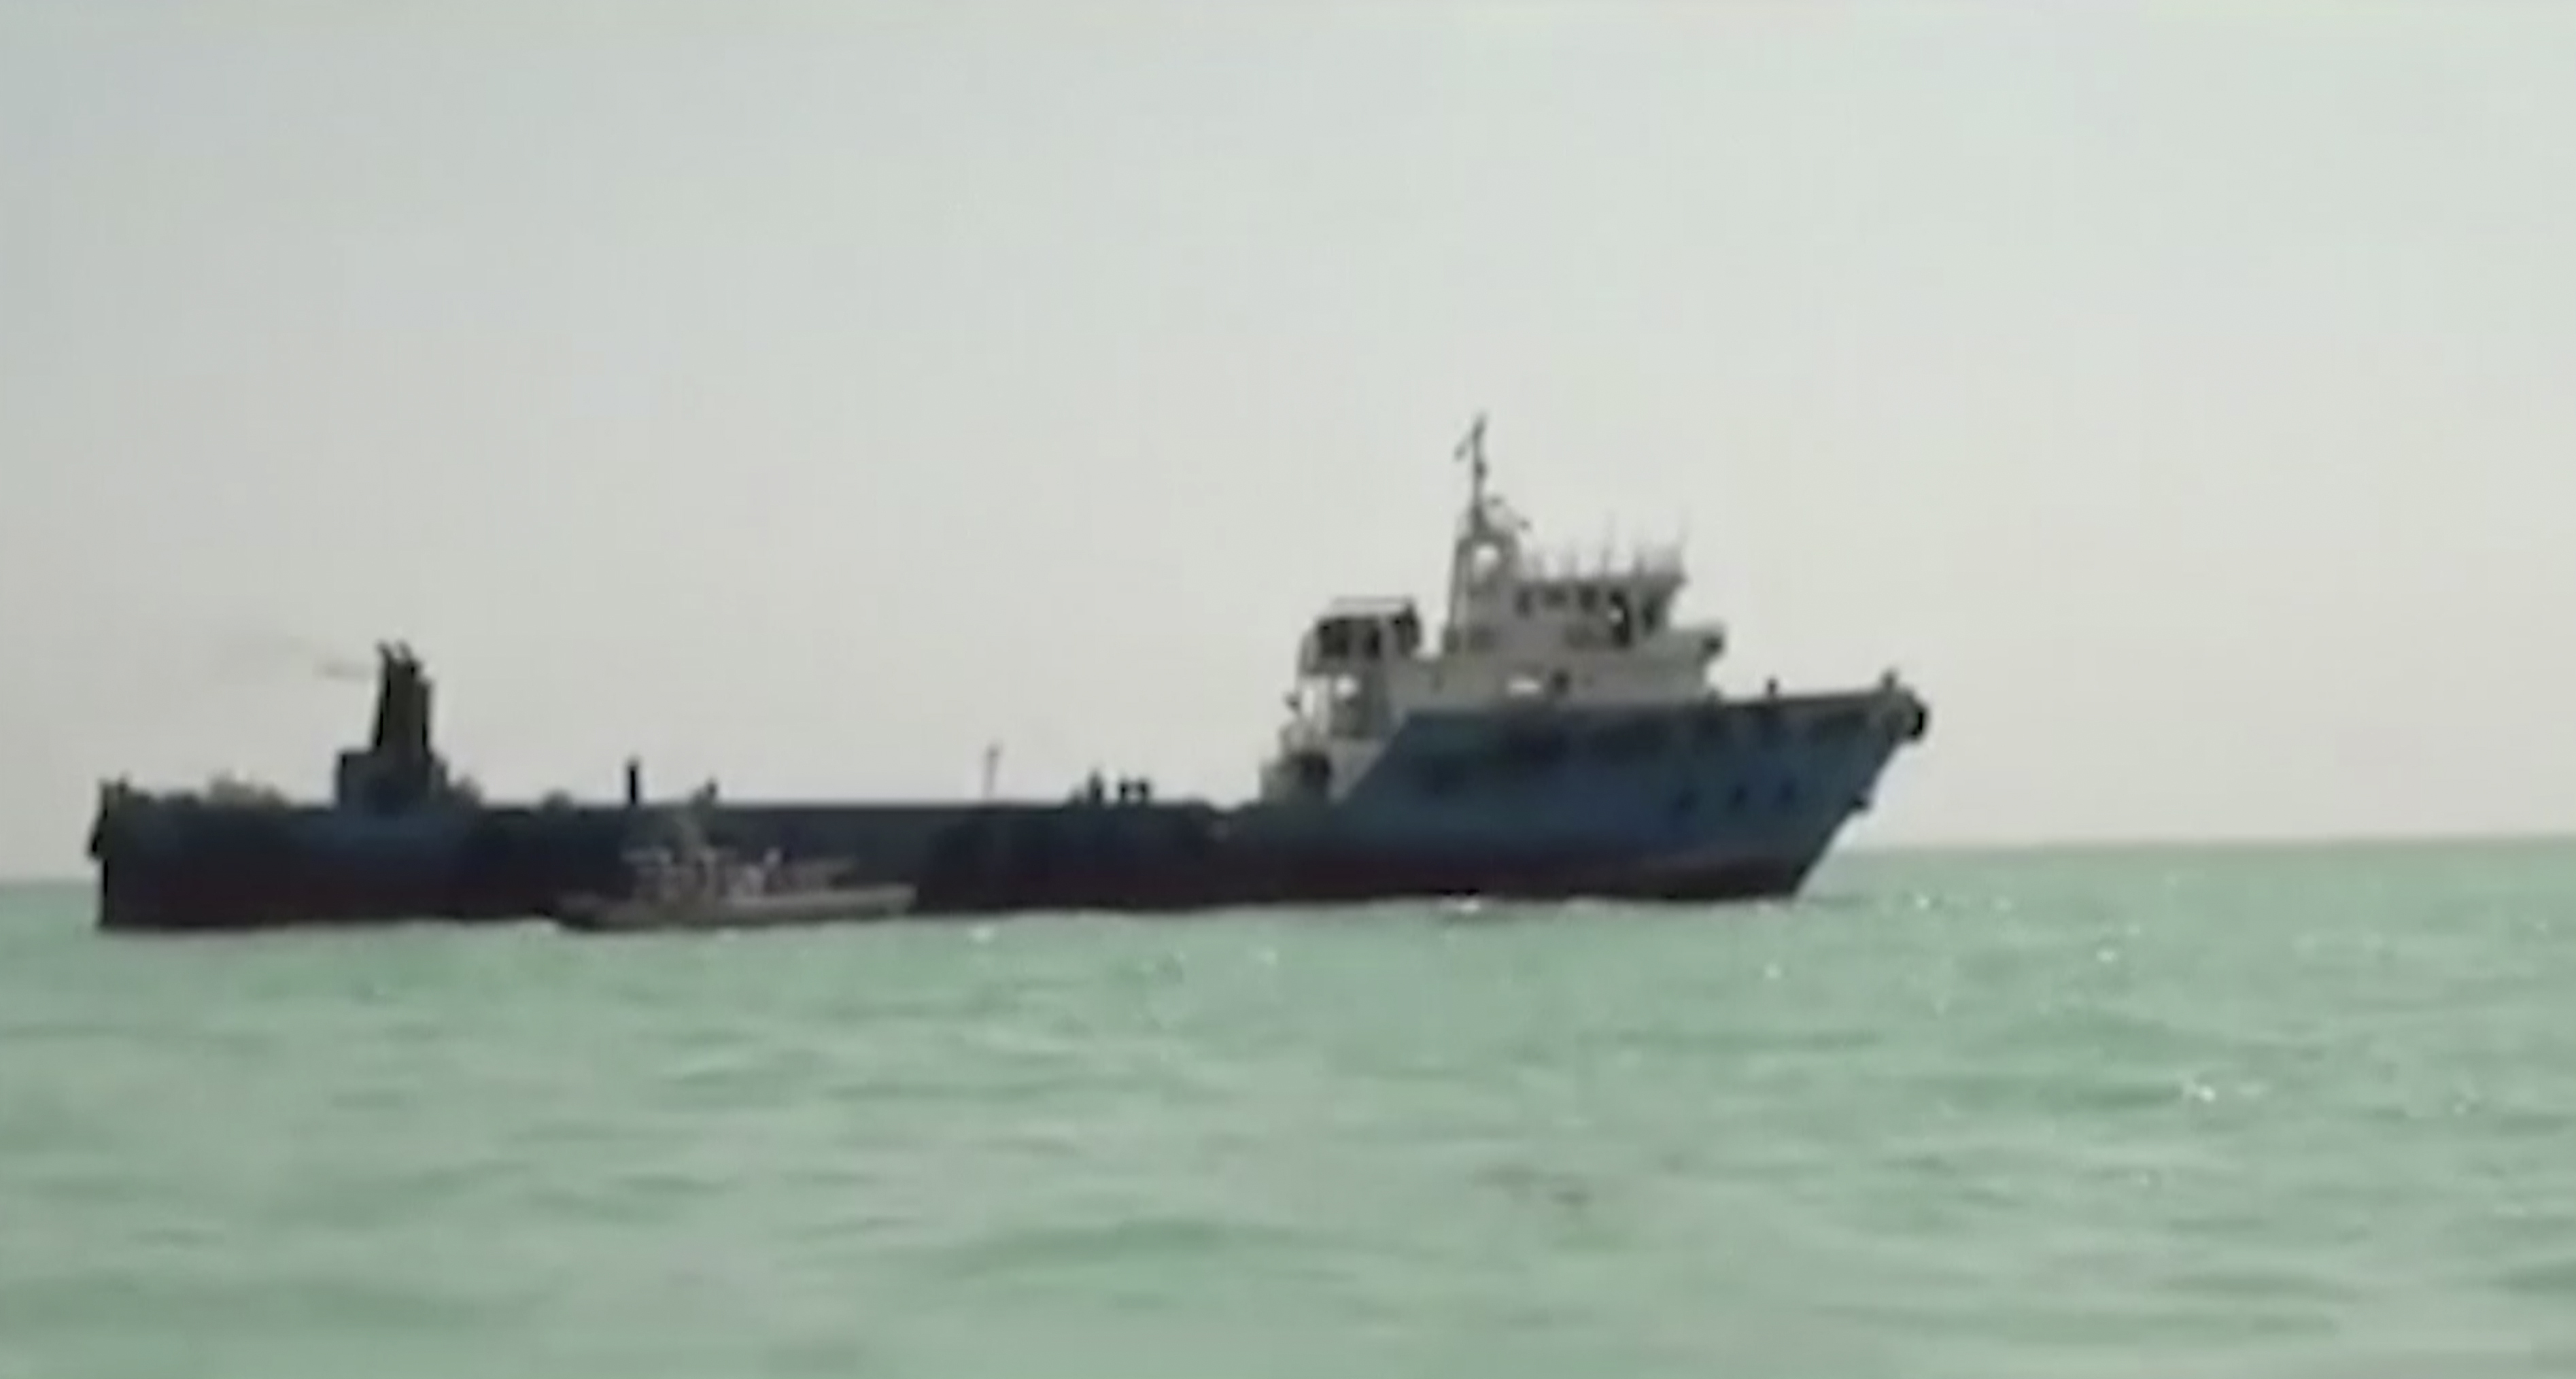 The Latest: US to revoke visas held by crew of Iranian ship